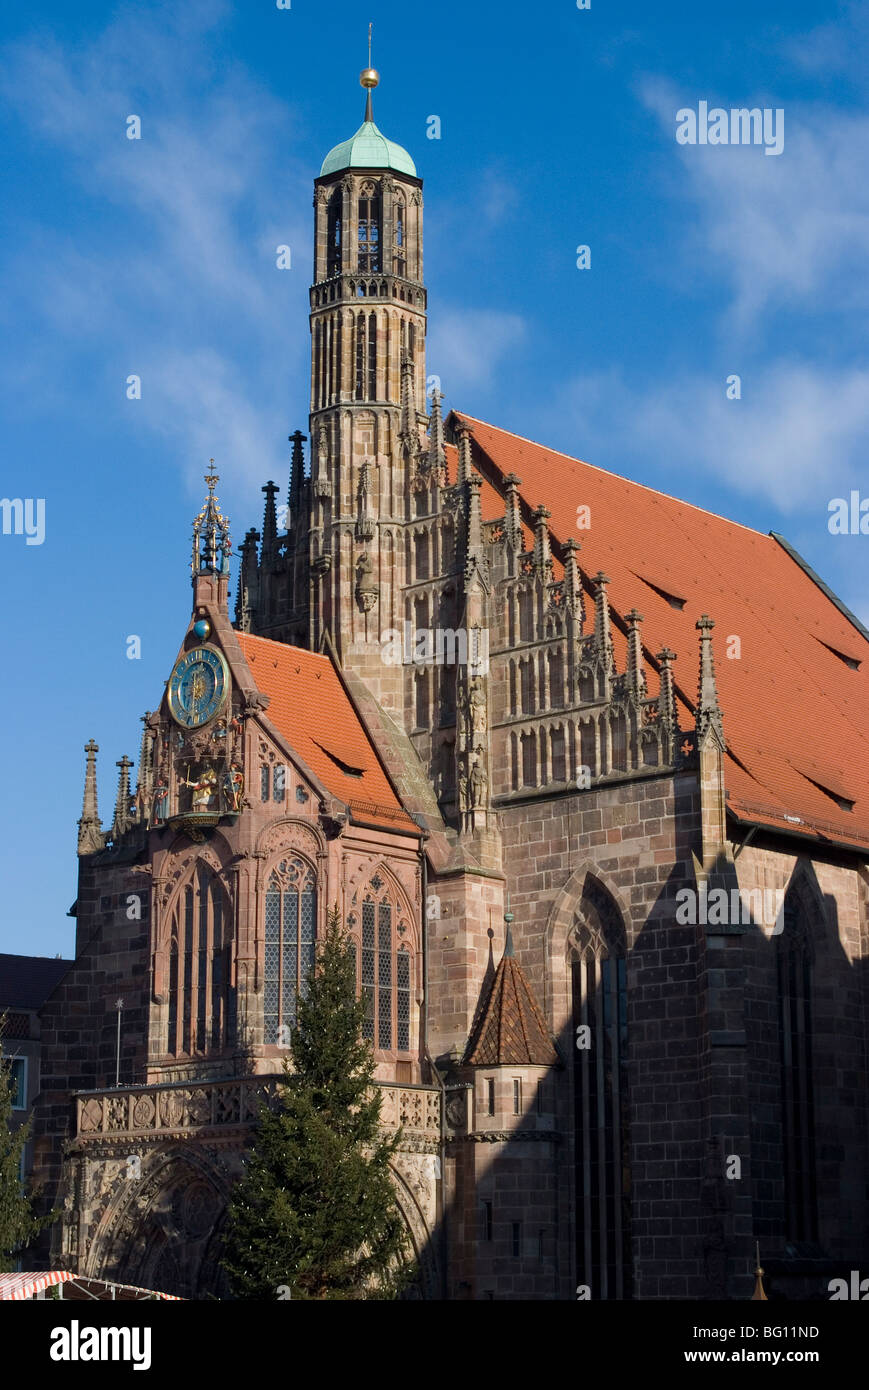 Unsere Liebe Frau Church (Church of Our Lady), Nuremberg, Bavaria, Germany, Europe - Stock Image